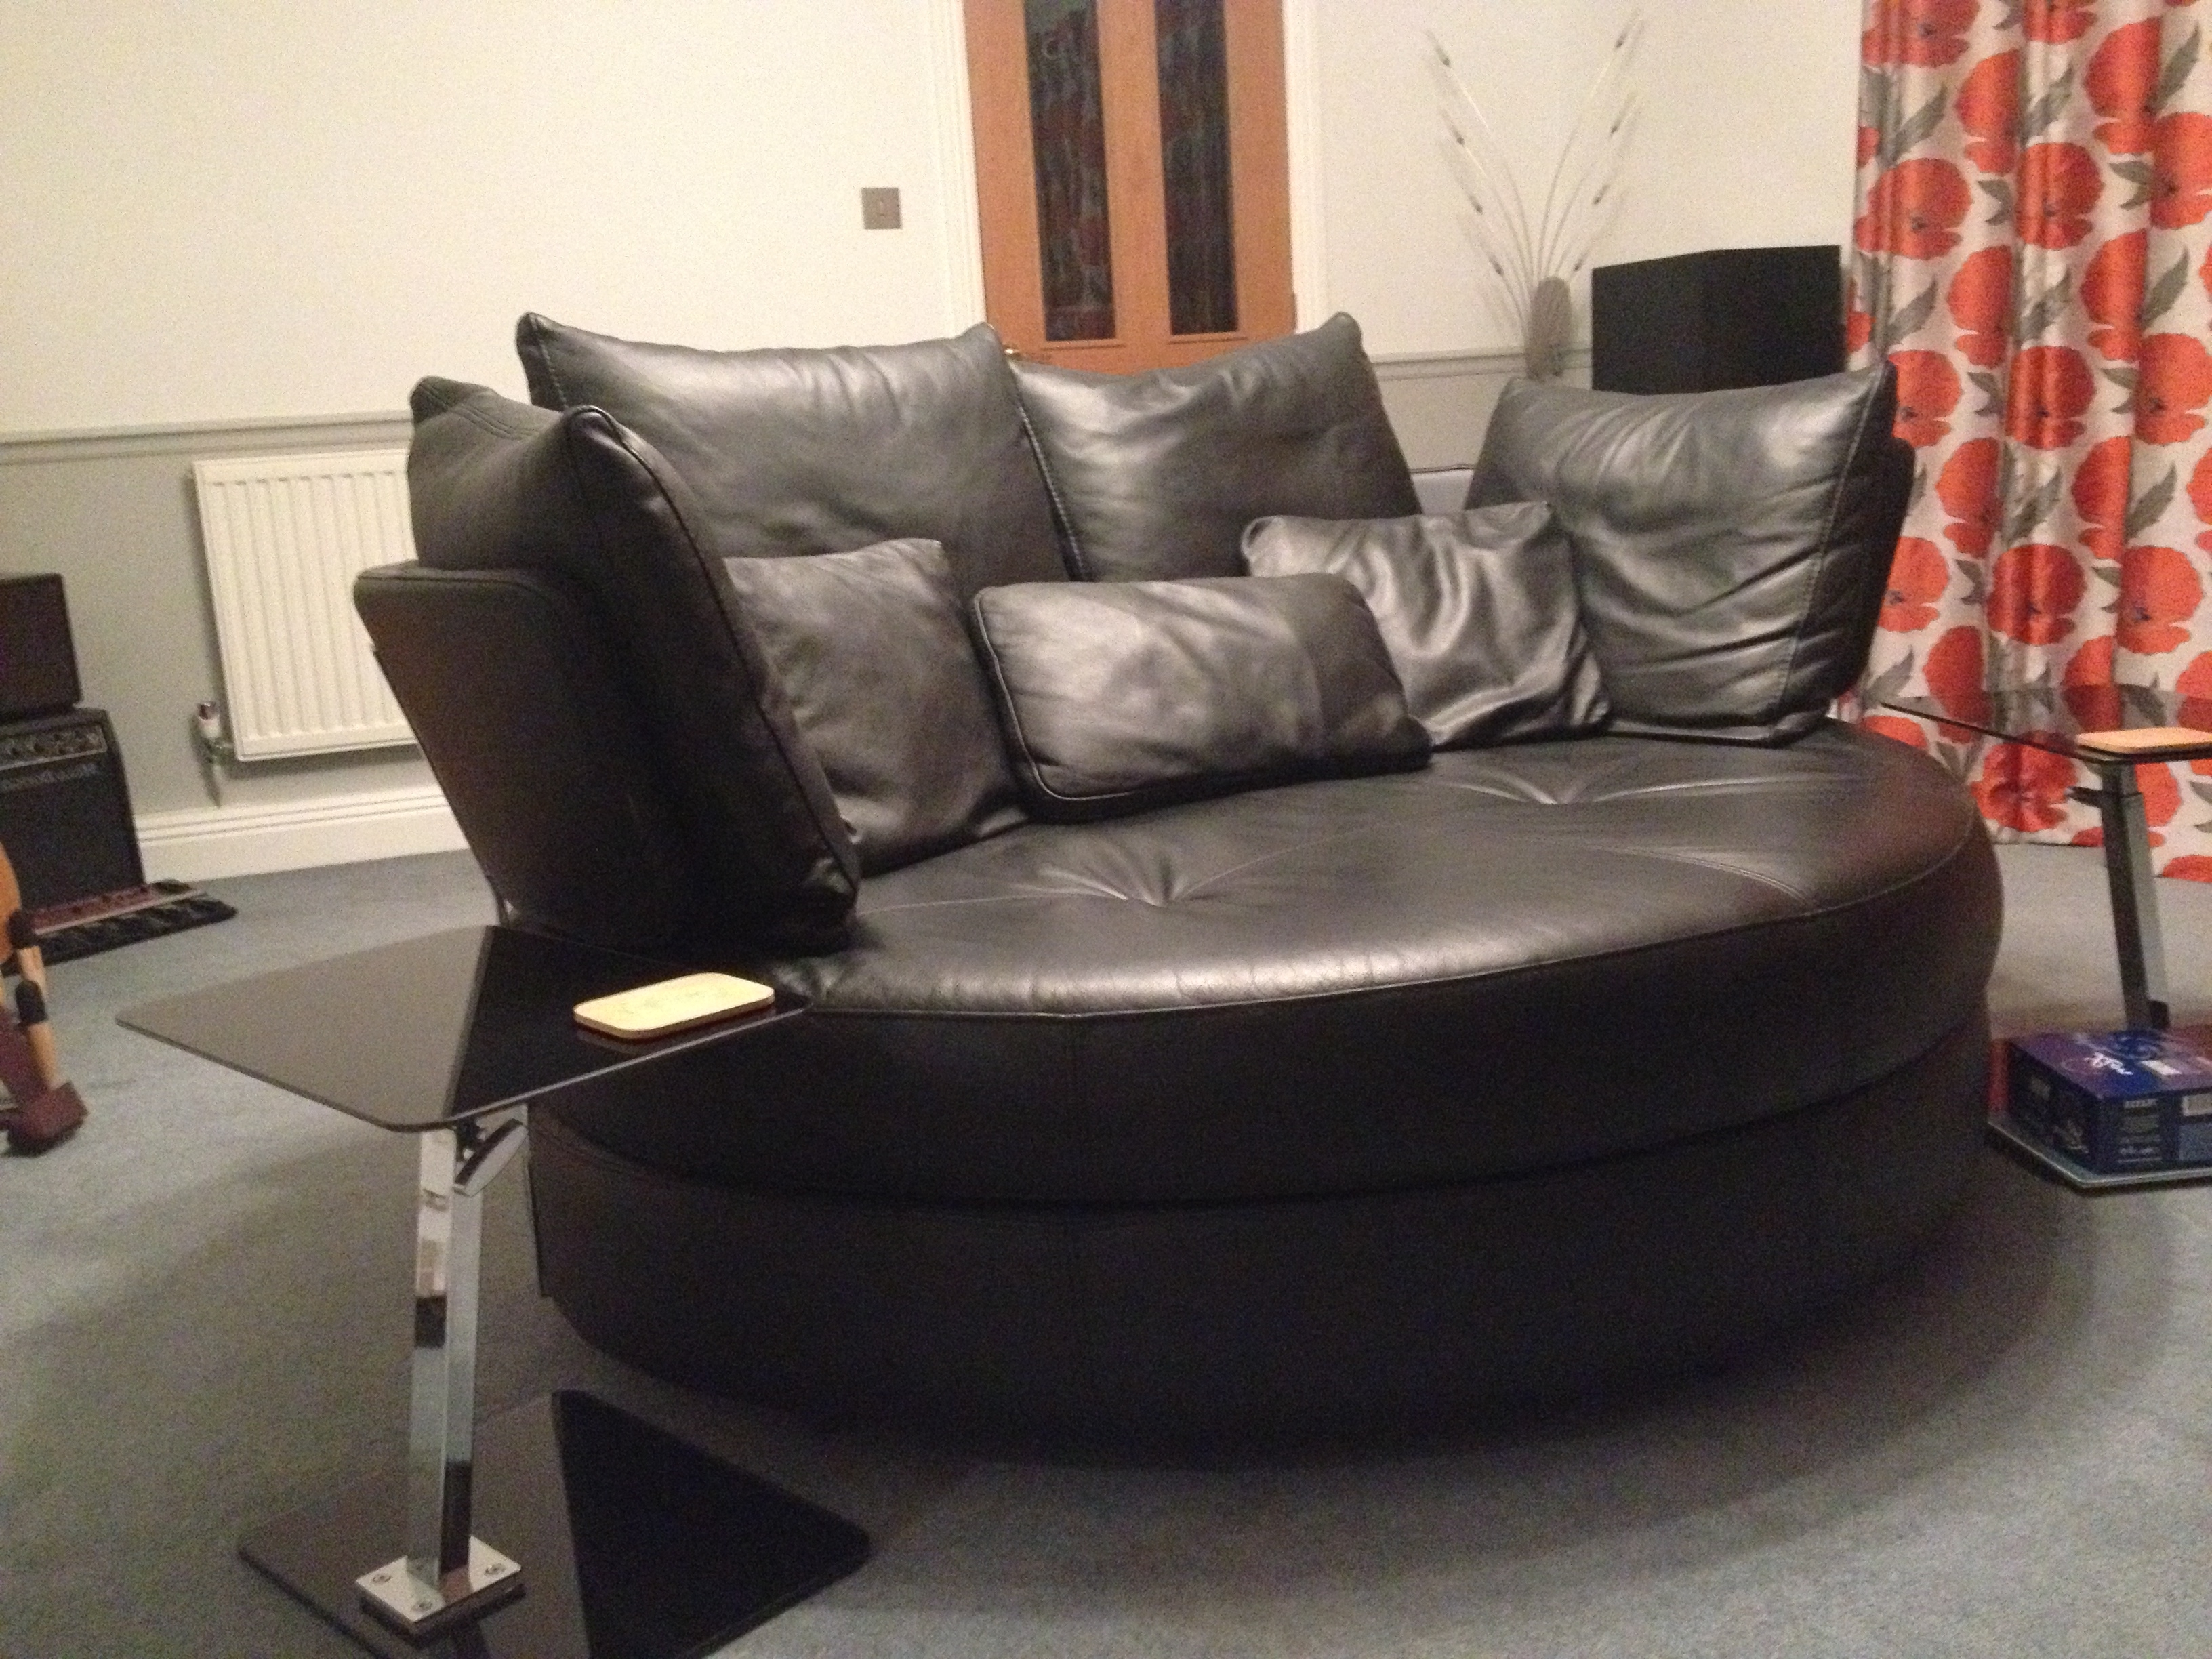 Sofas With Swivel Chair In Preferred Fabulous Leather 2 Person Large Swivel Snuggler Chair/sofa (View 12 of 20)